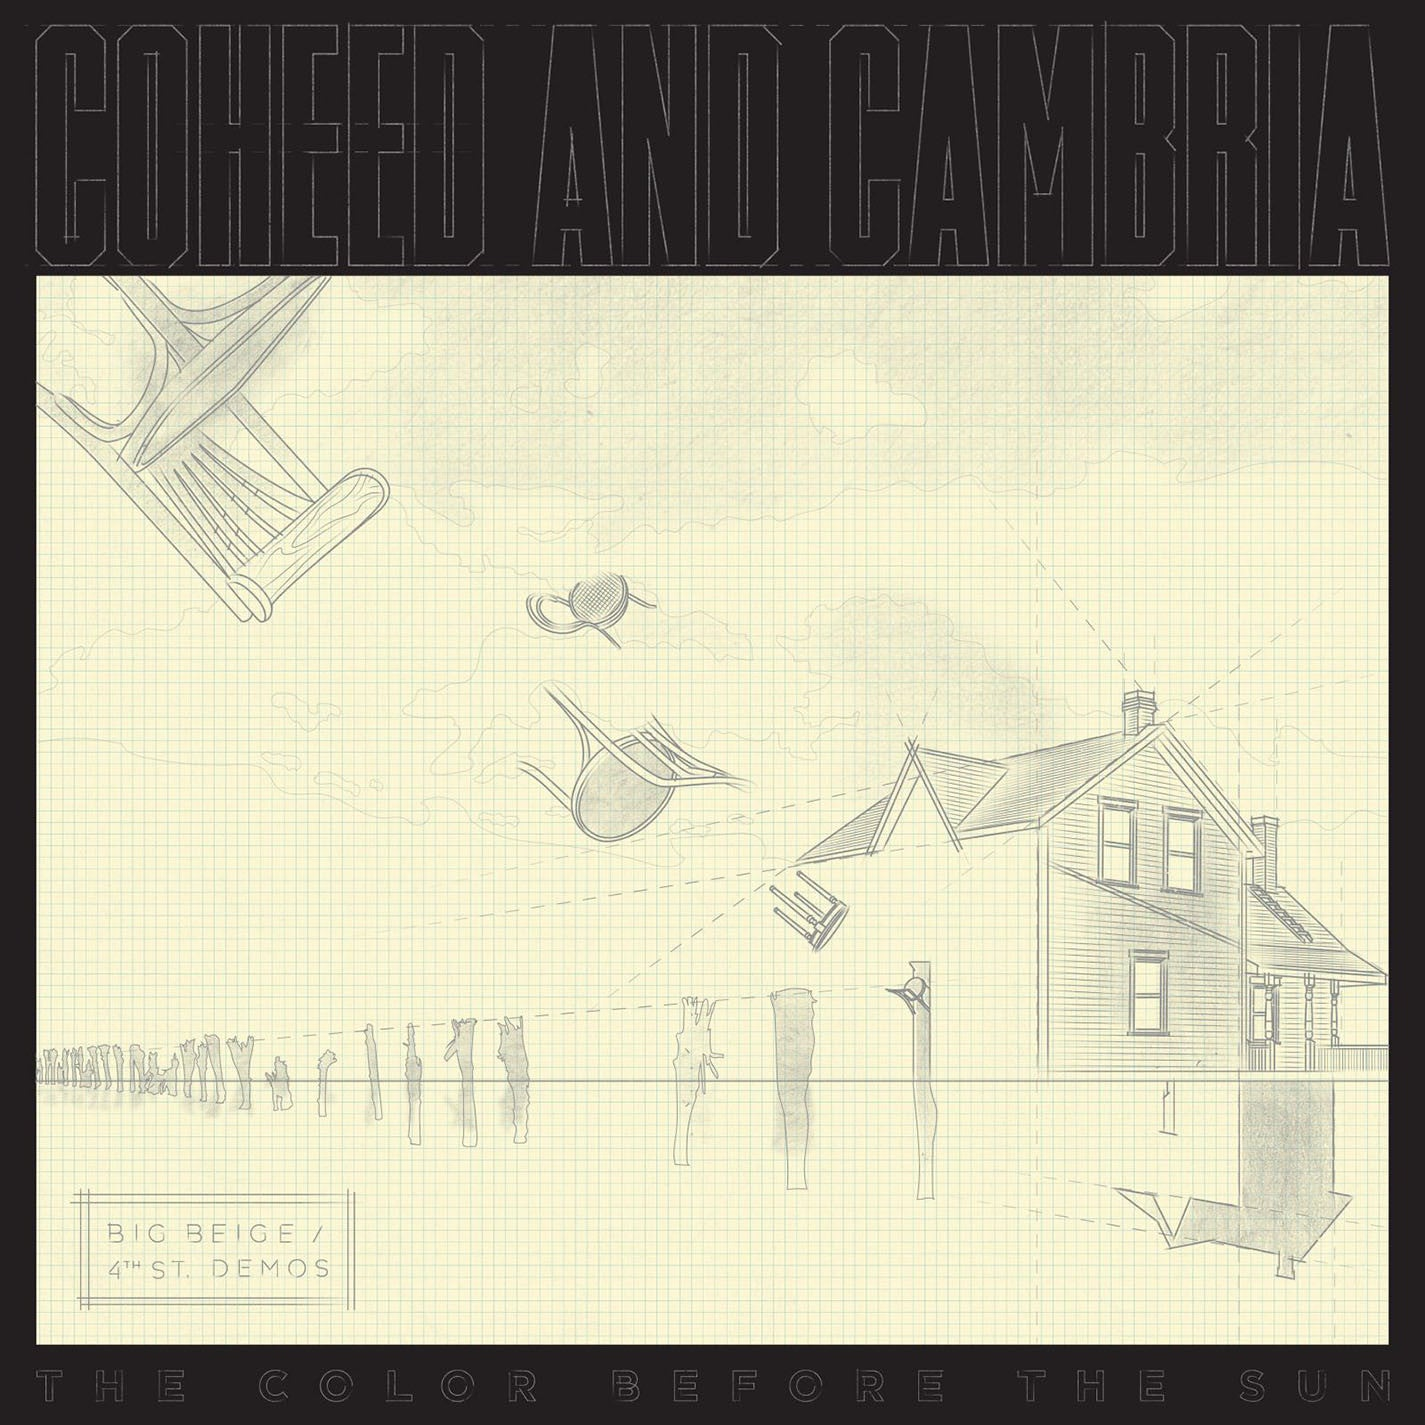 Coheed and Cambria - The Color Before The Sun (Official Band Demos) LP RSD Black Friday 2015